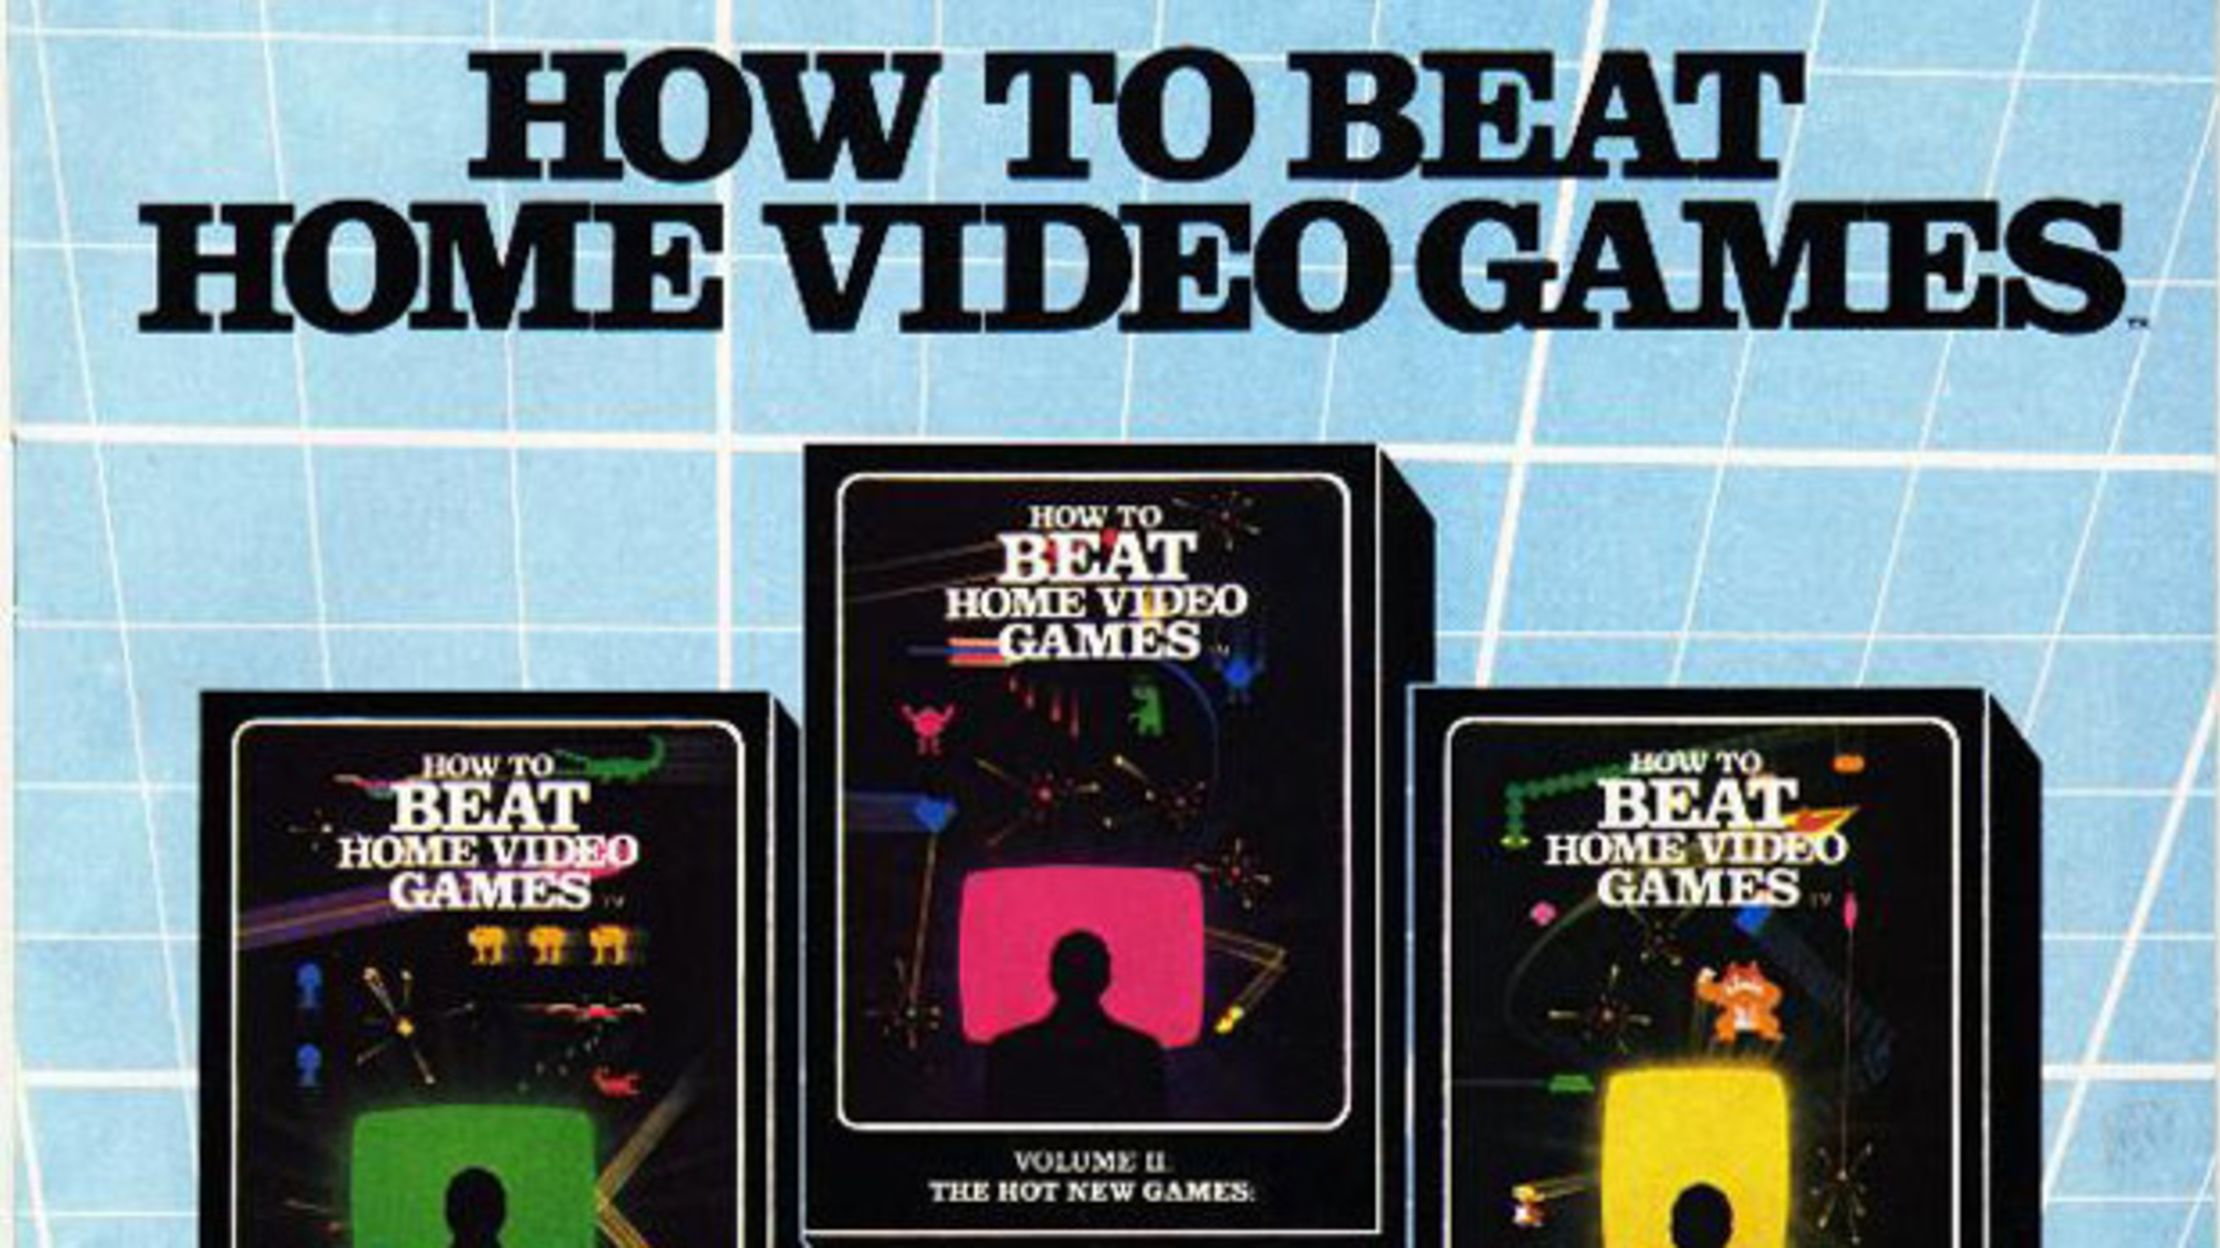 The Late Movies: How to Beat Home Video Games (in 1982.